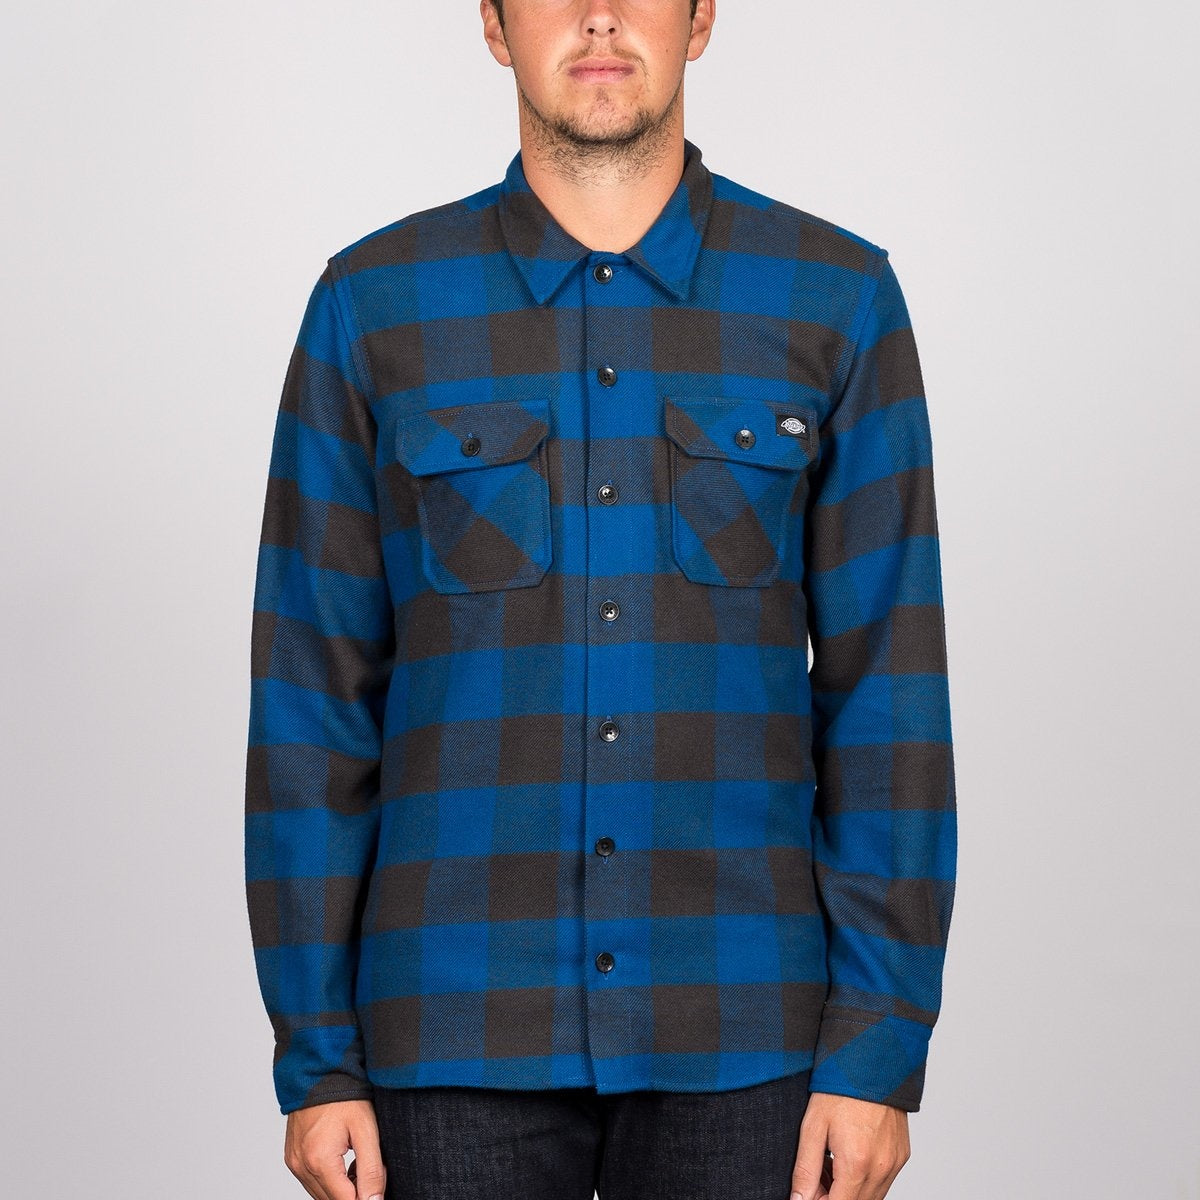 Dickies Sacramento Long Sleeve Shirt Blue - Clothing